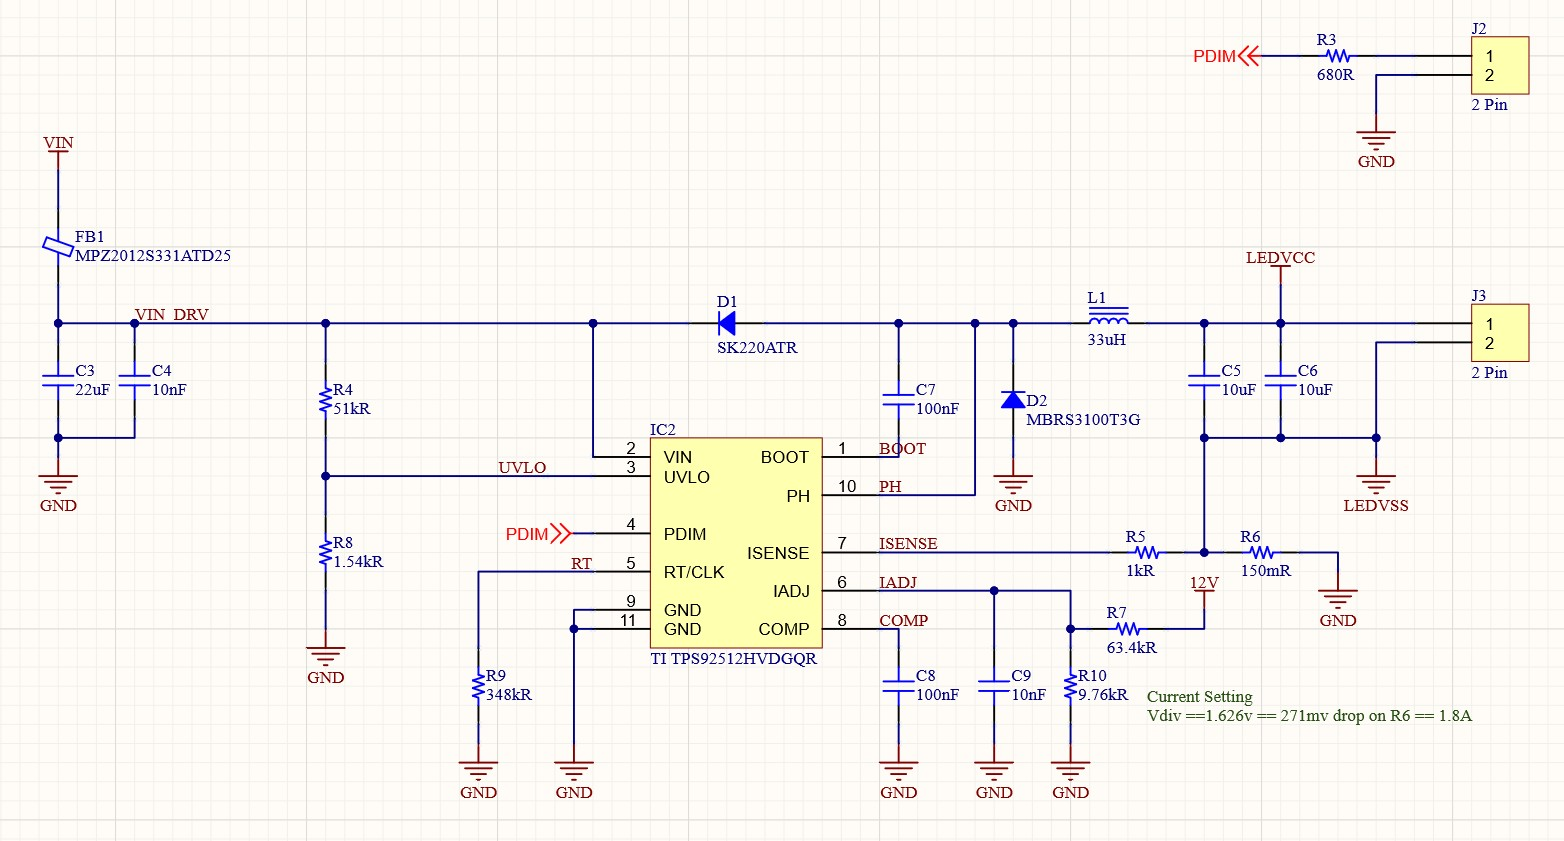 LED Driver Schematic using TI TPS92512HV and passives